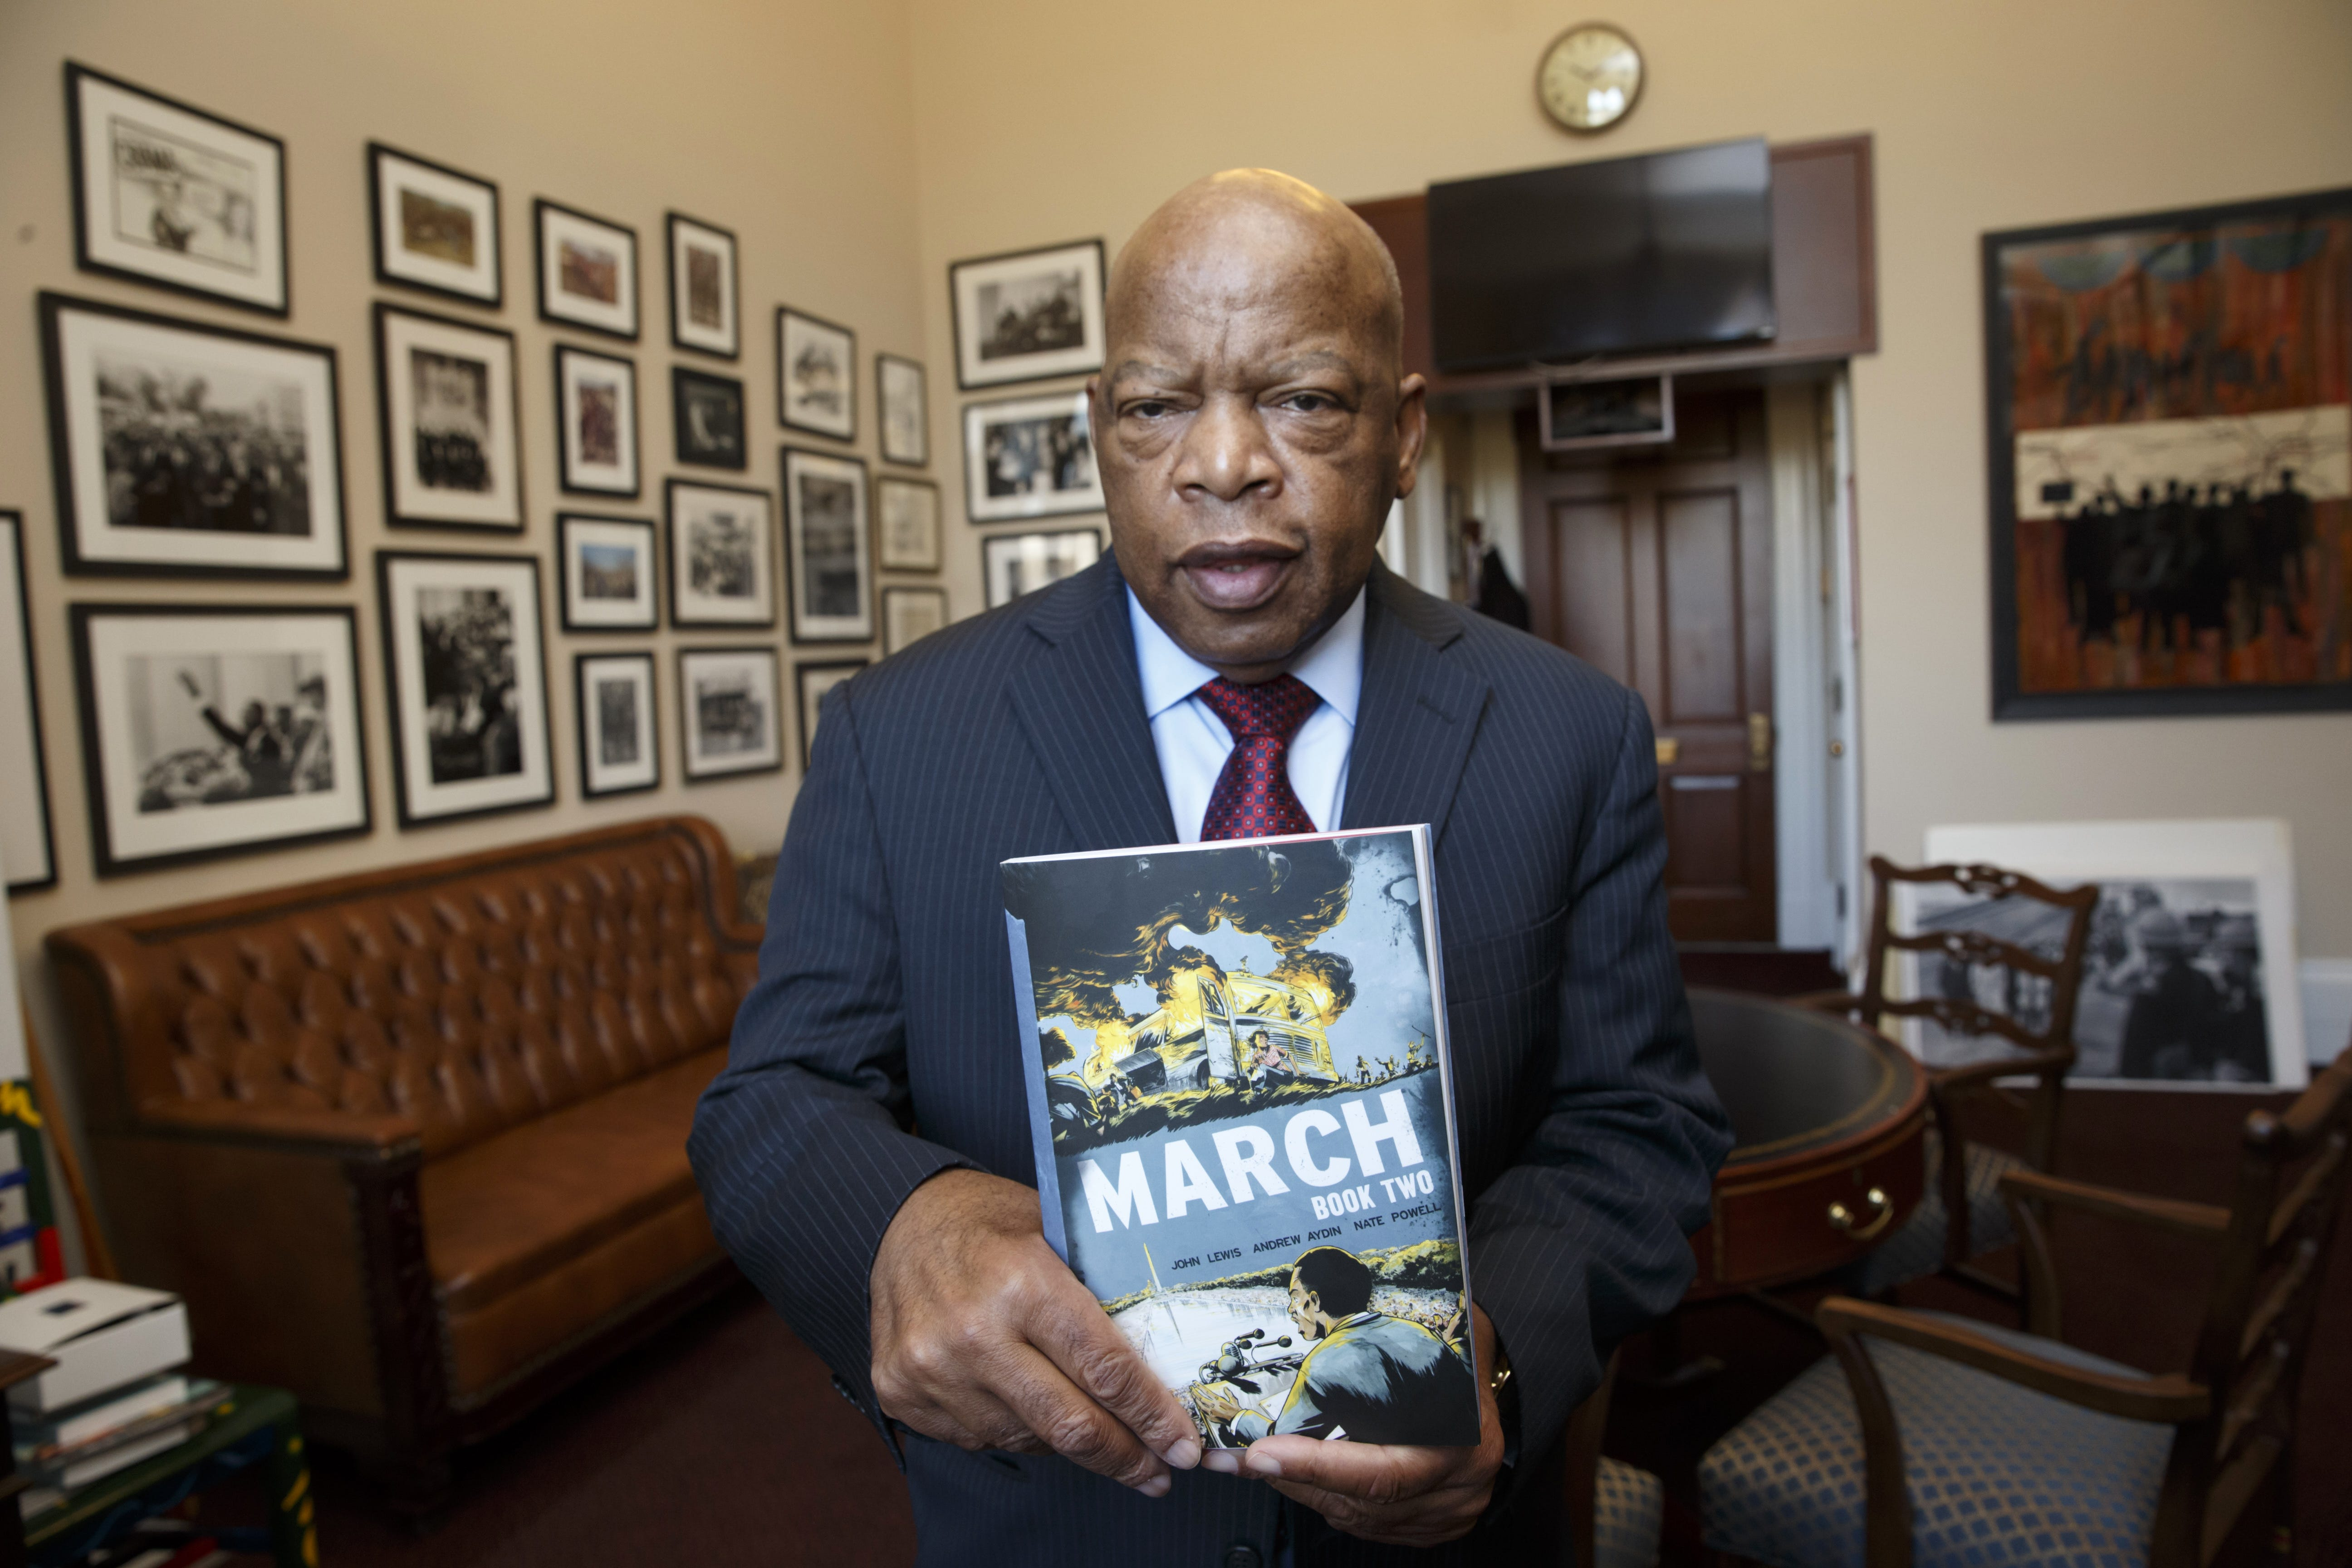 U.S. Rep. John Lewis holds the new installment of his award-winning graphic novel. A comic book about Martin Luther King Jr. helped bring Lewis, one of the leaders of the Selma-to-Montgomery march on Bloody Sunday, into the civil rights movement.